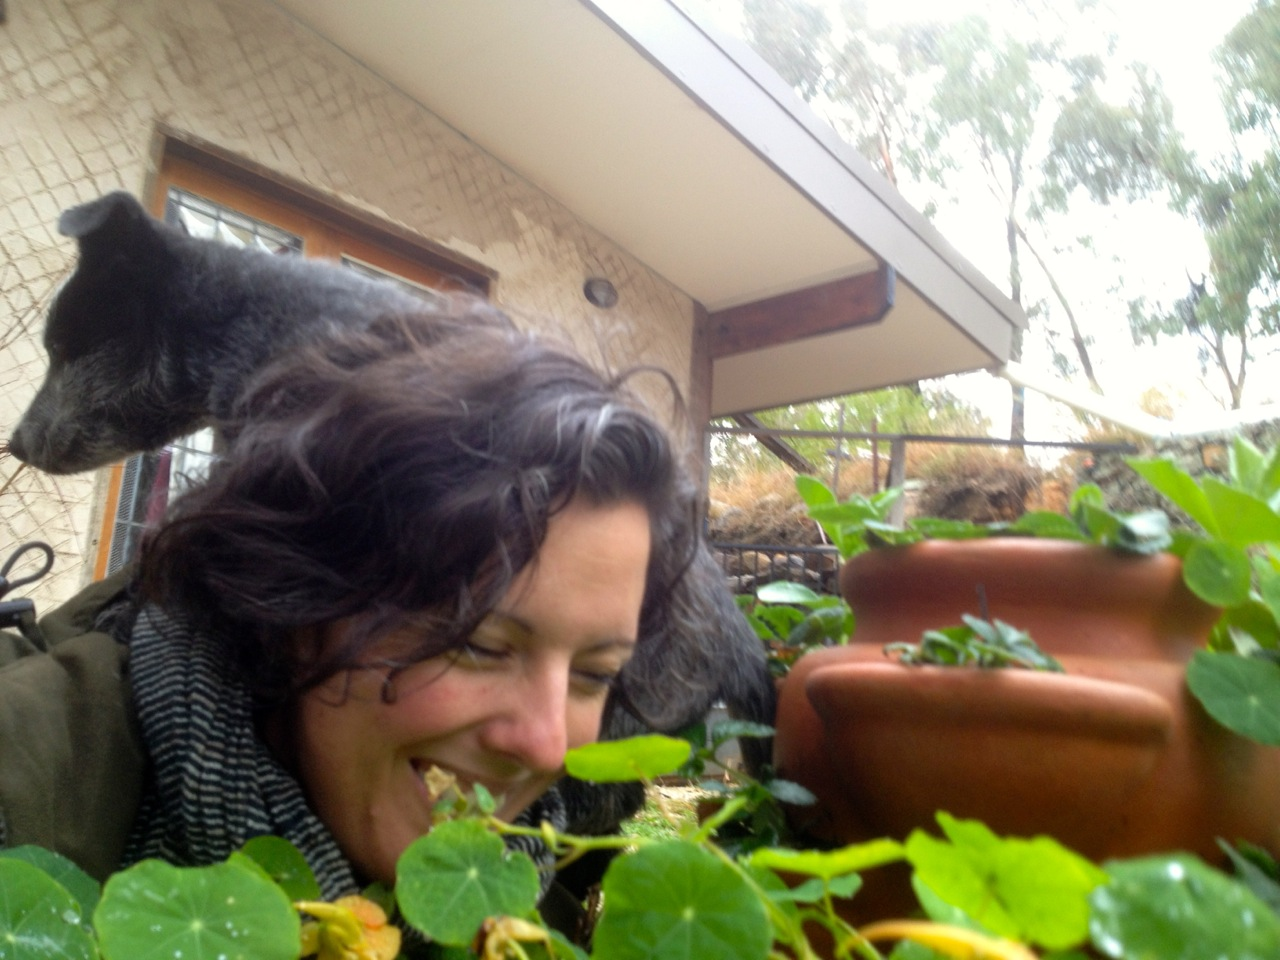 Trying to take a reasonable selfie in the tinyhouse garden in the rain for a gardening magazine. I did not succeed.